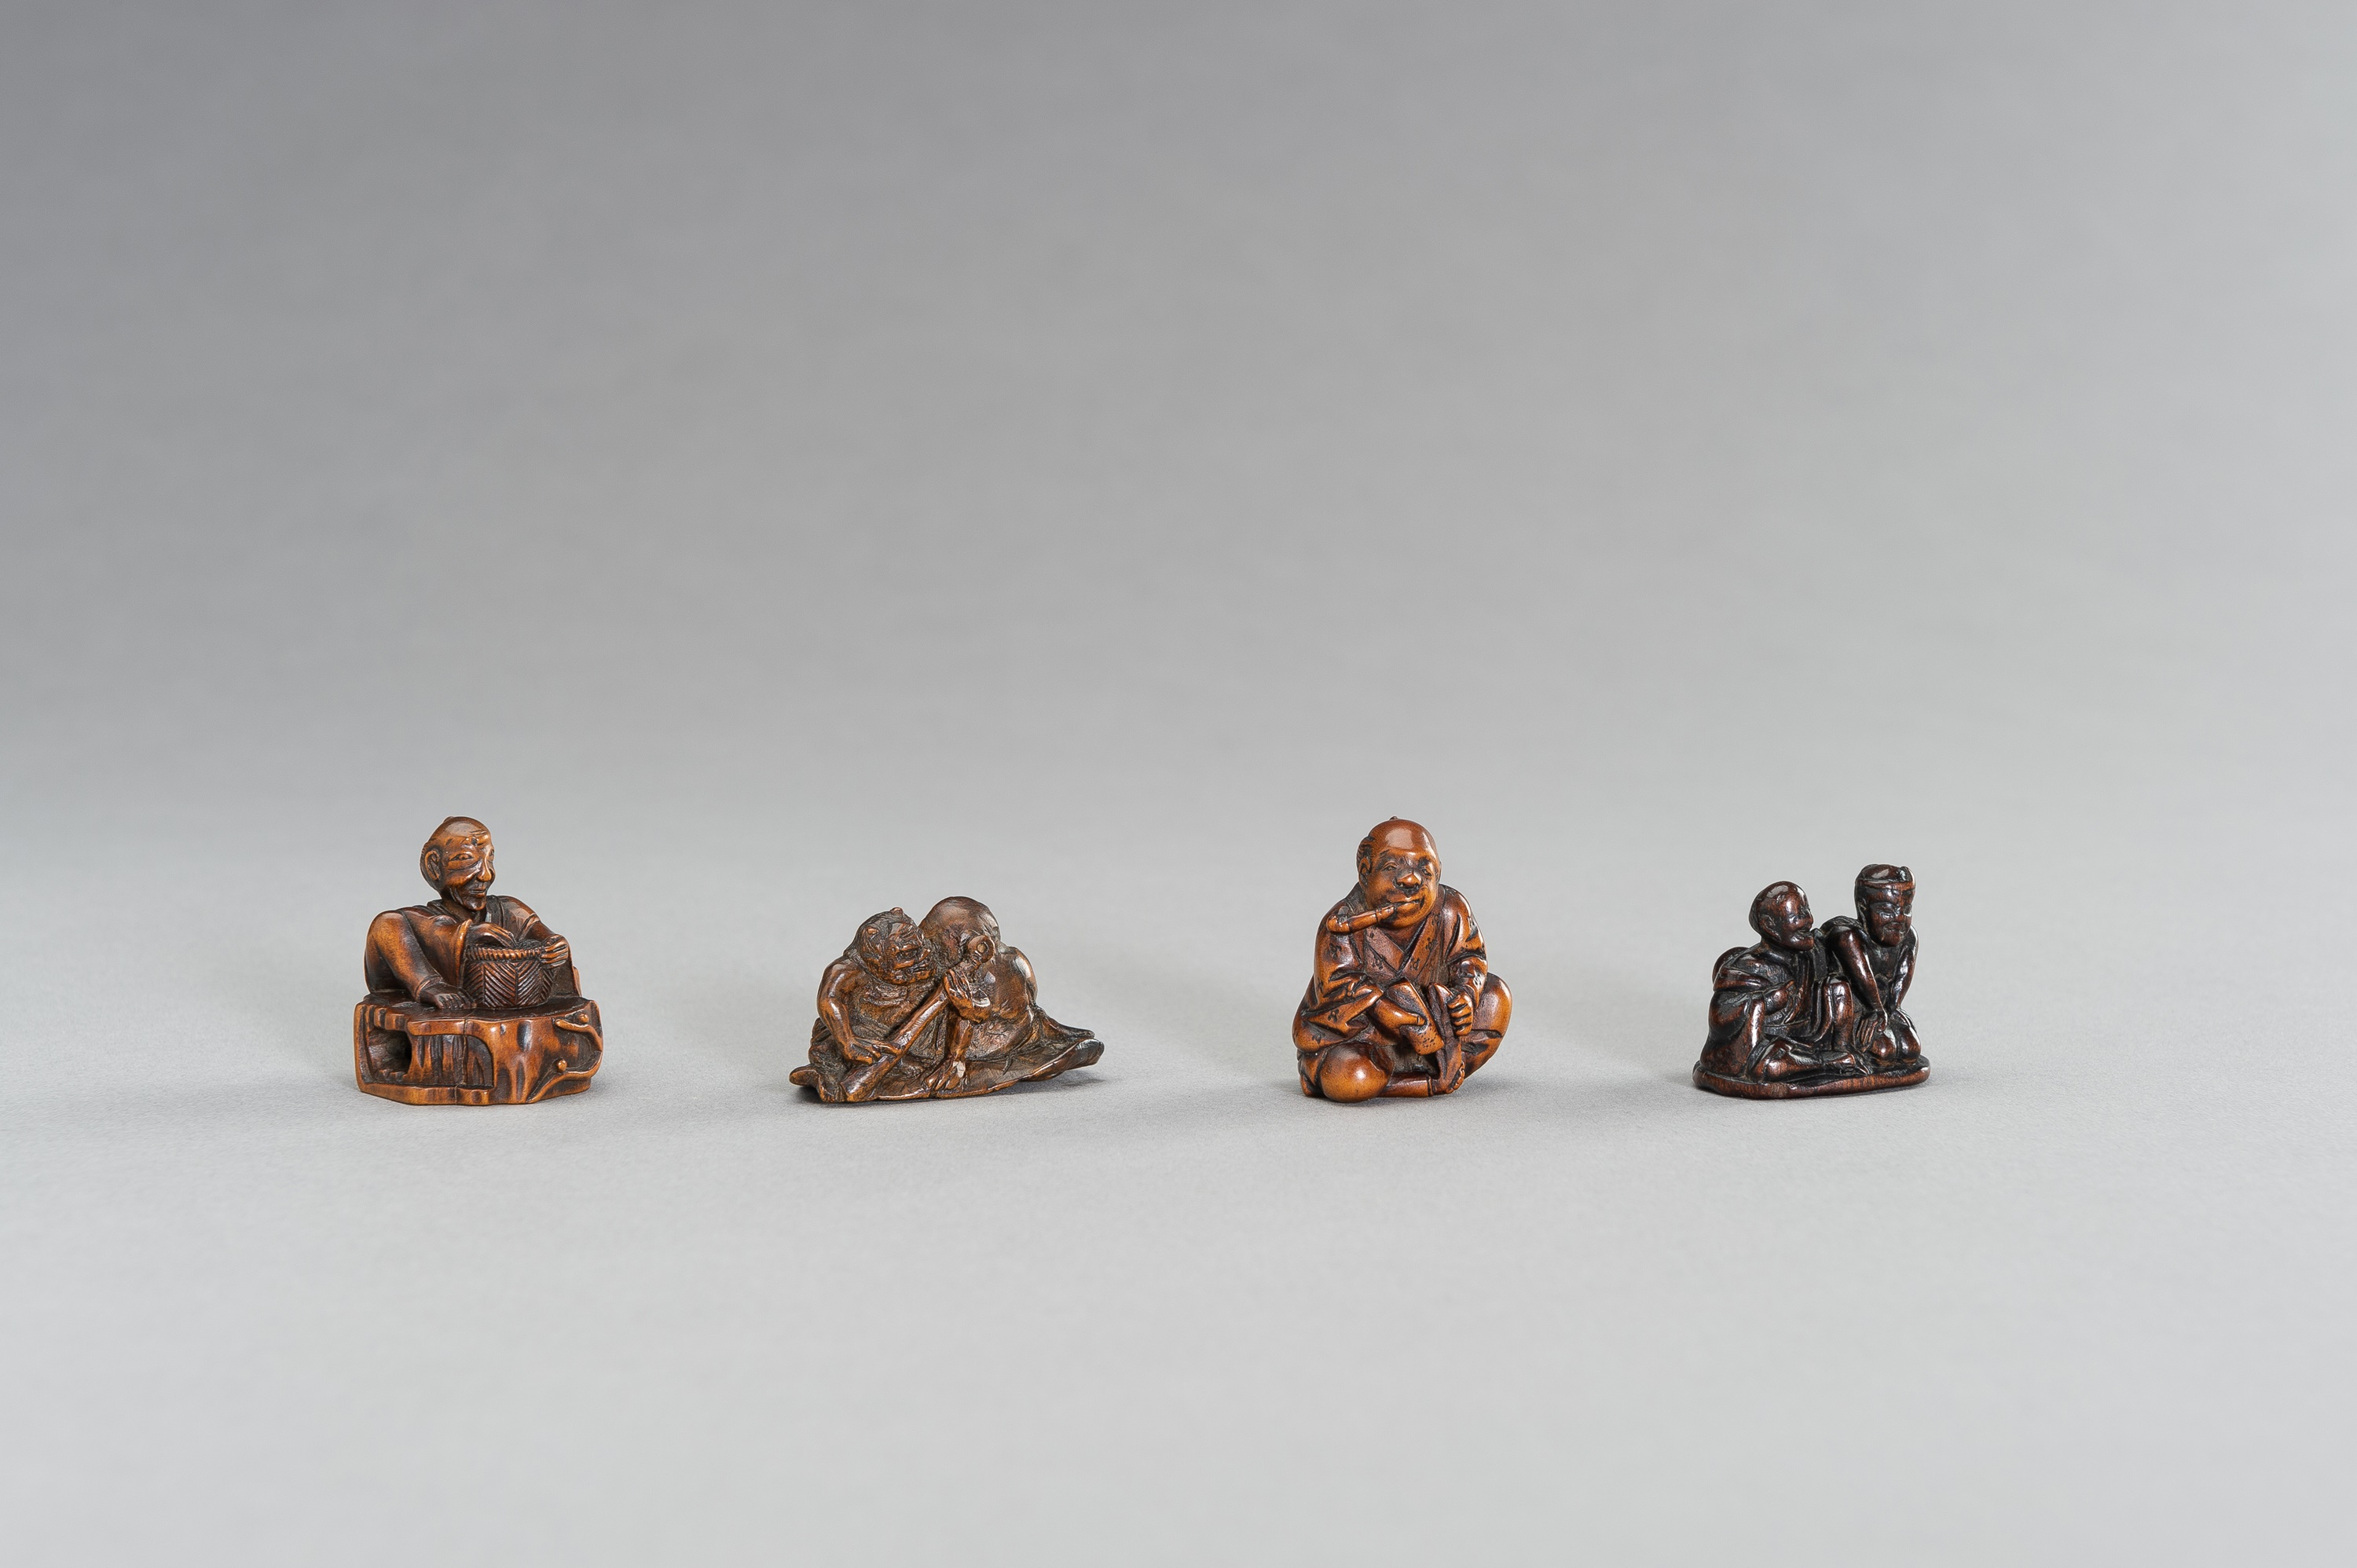 A GROUP OF FOUR FIGURAL WOOD NETSUKE - Image 3 of 3